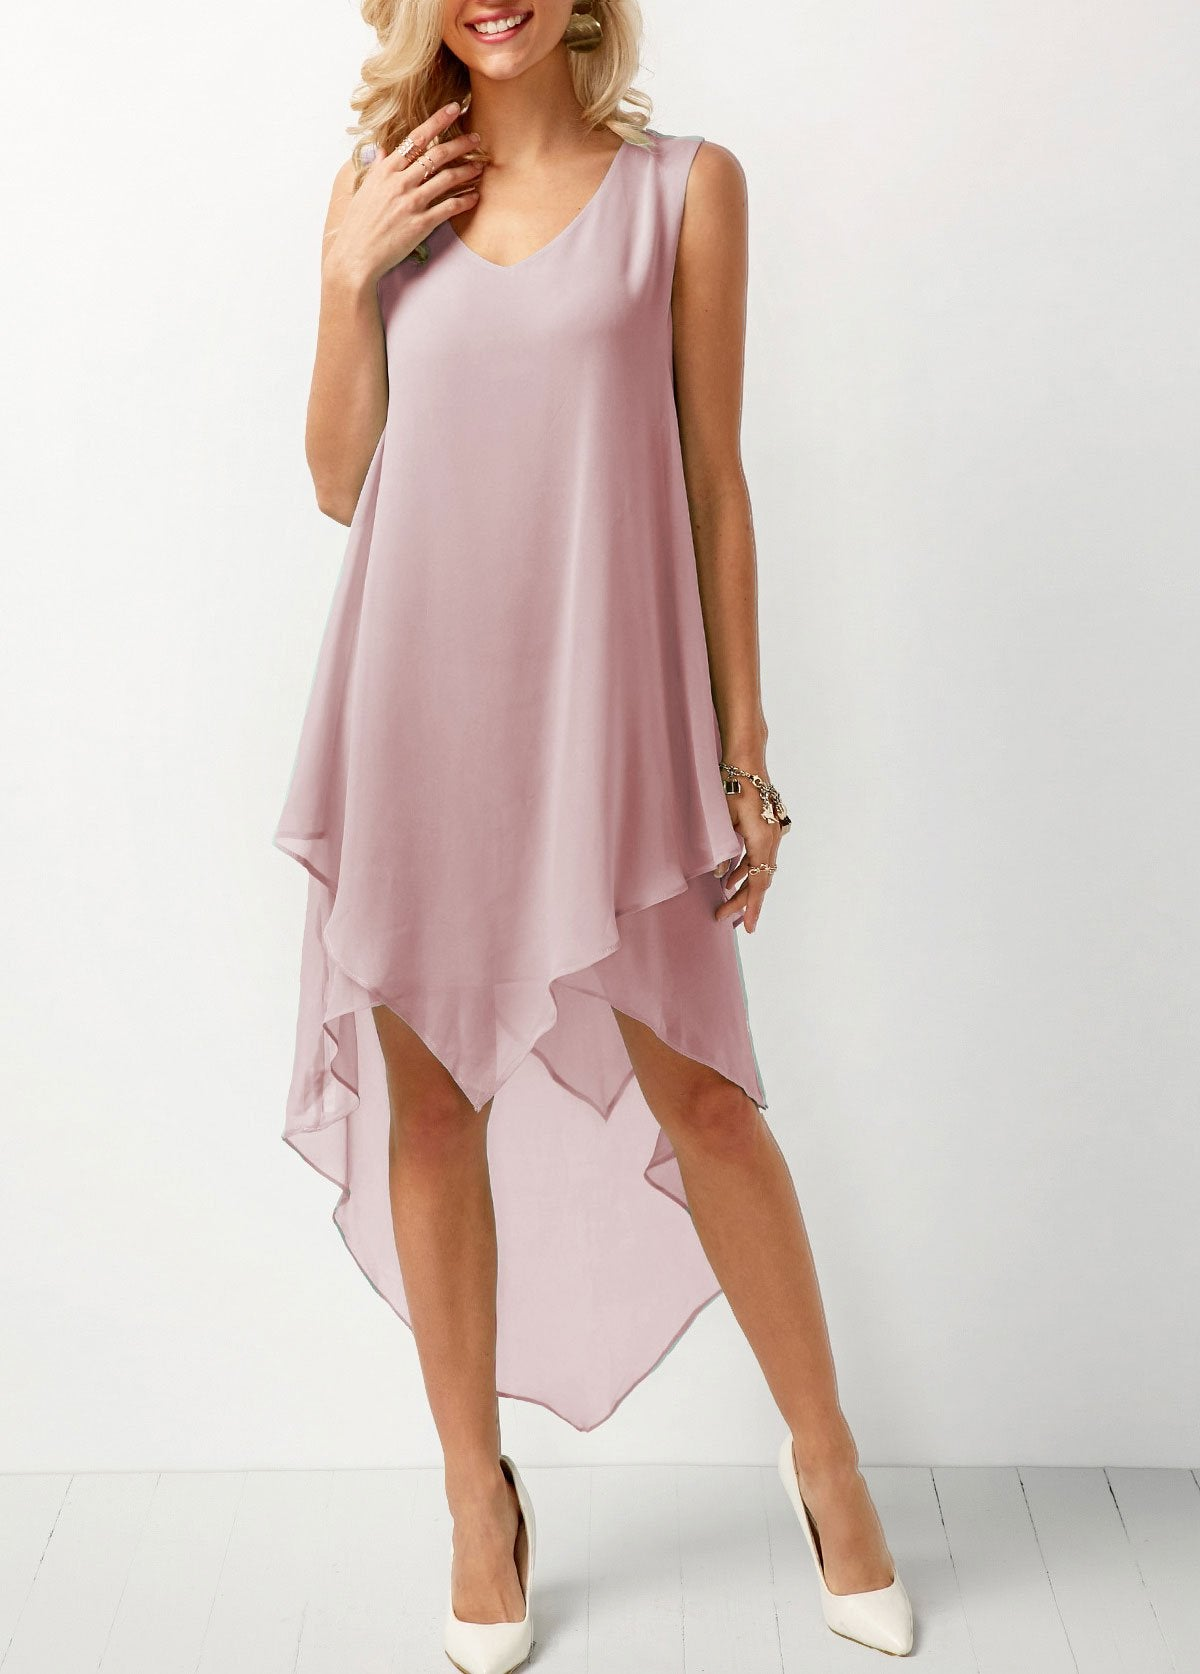 Joana - Airy Chiffon Dress - Pink / S (4-6 US) (8 UK)